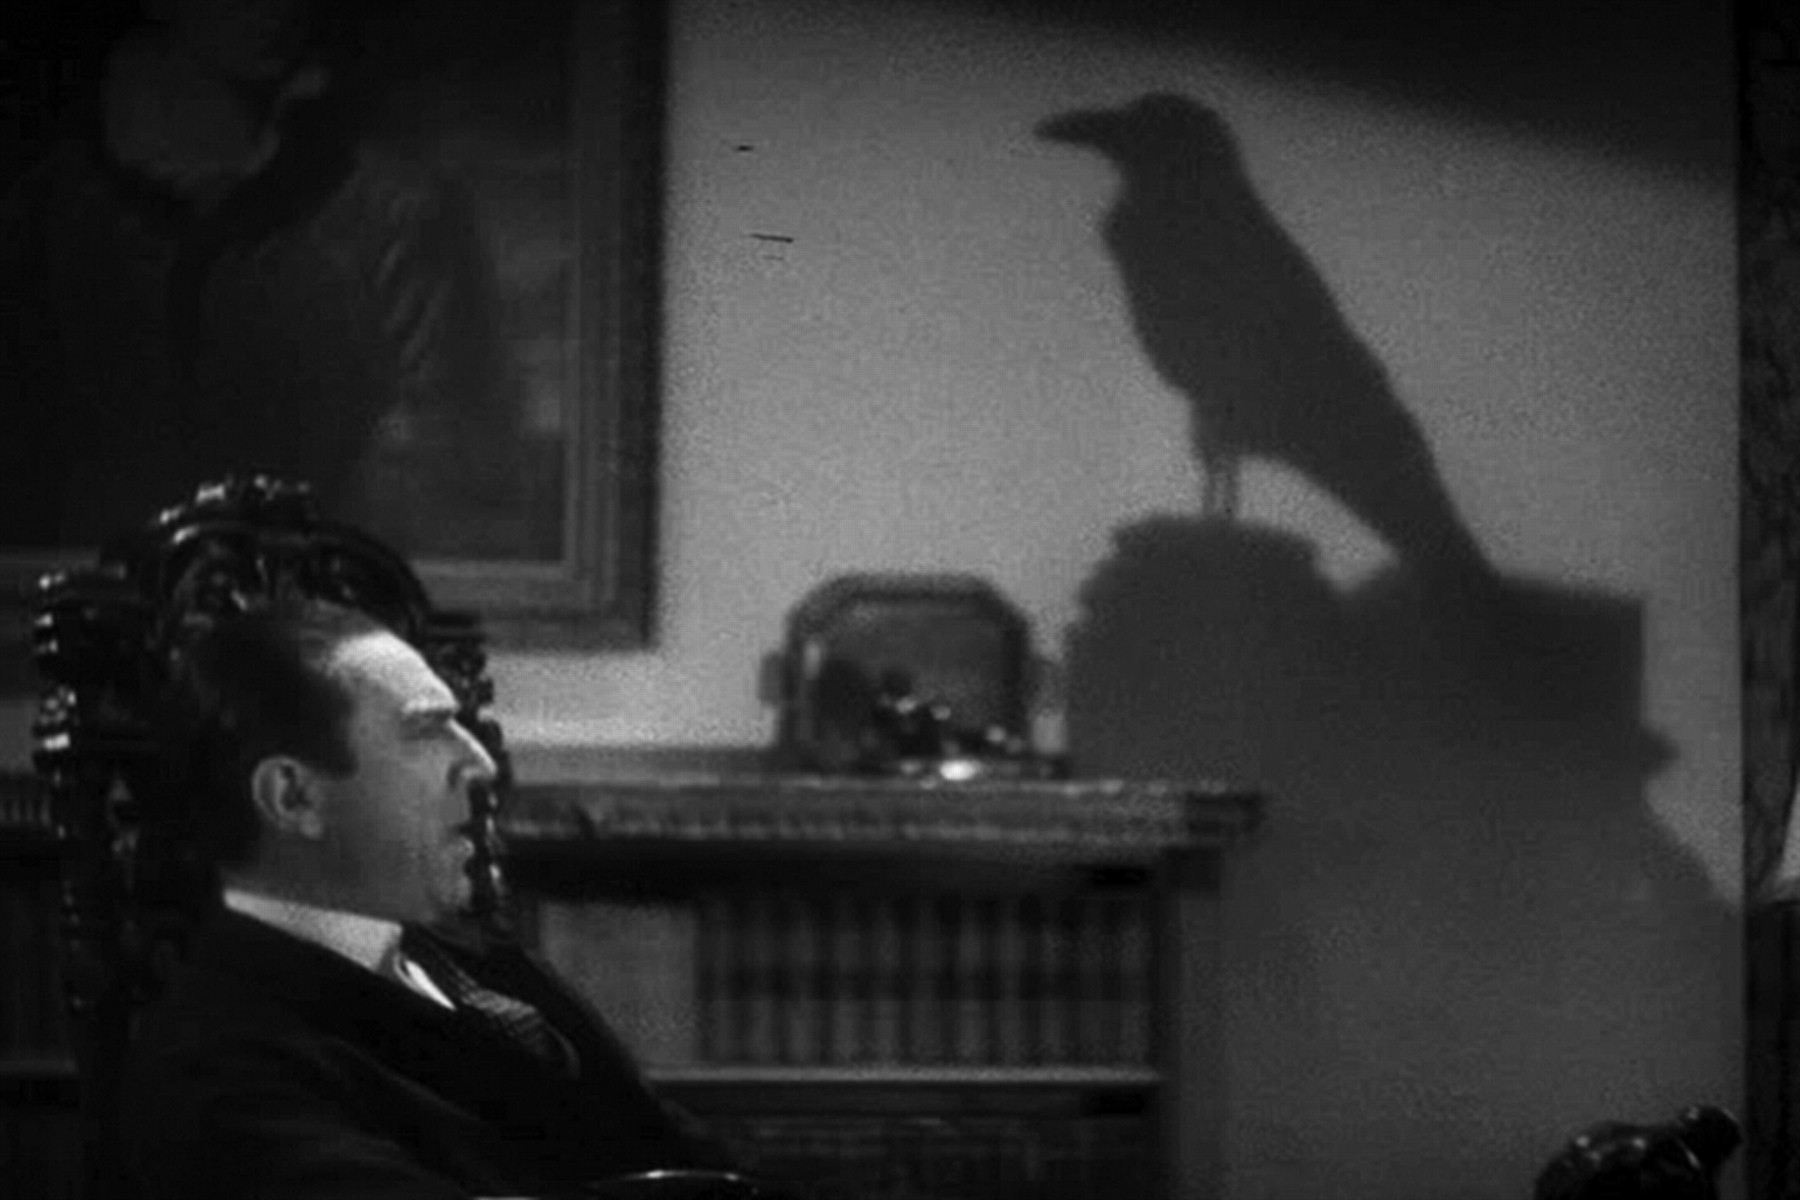 edgar allan poe depression there is no beauty out some strangeness  the best horror movies based on the works of edgar allan poe the 10 best horror